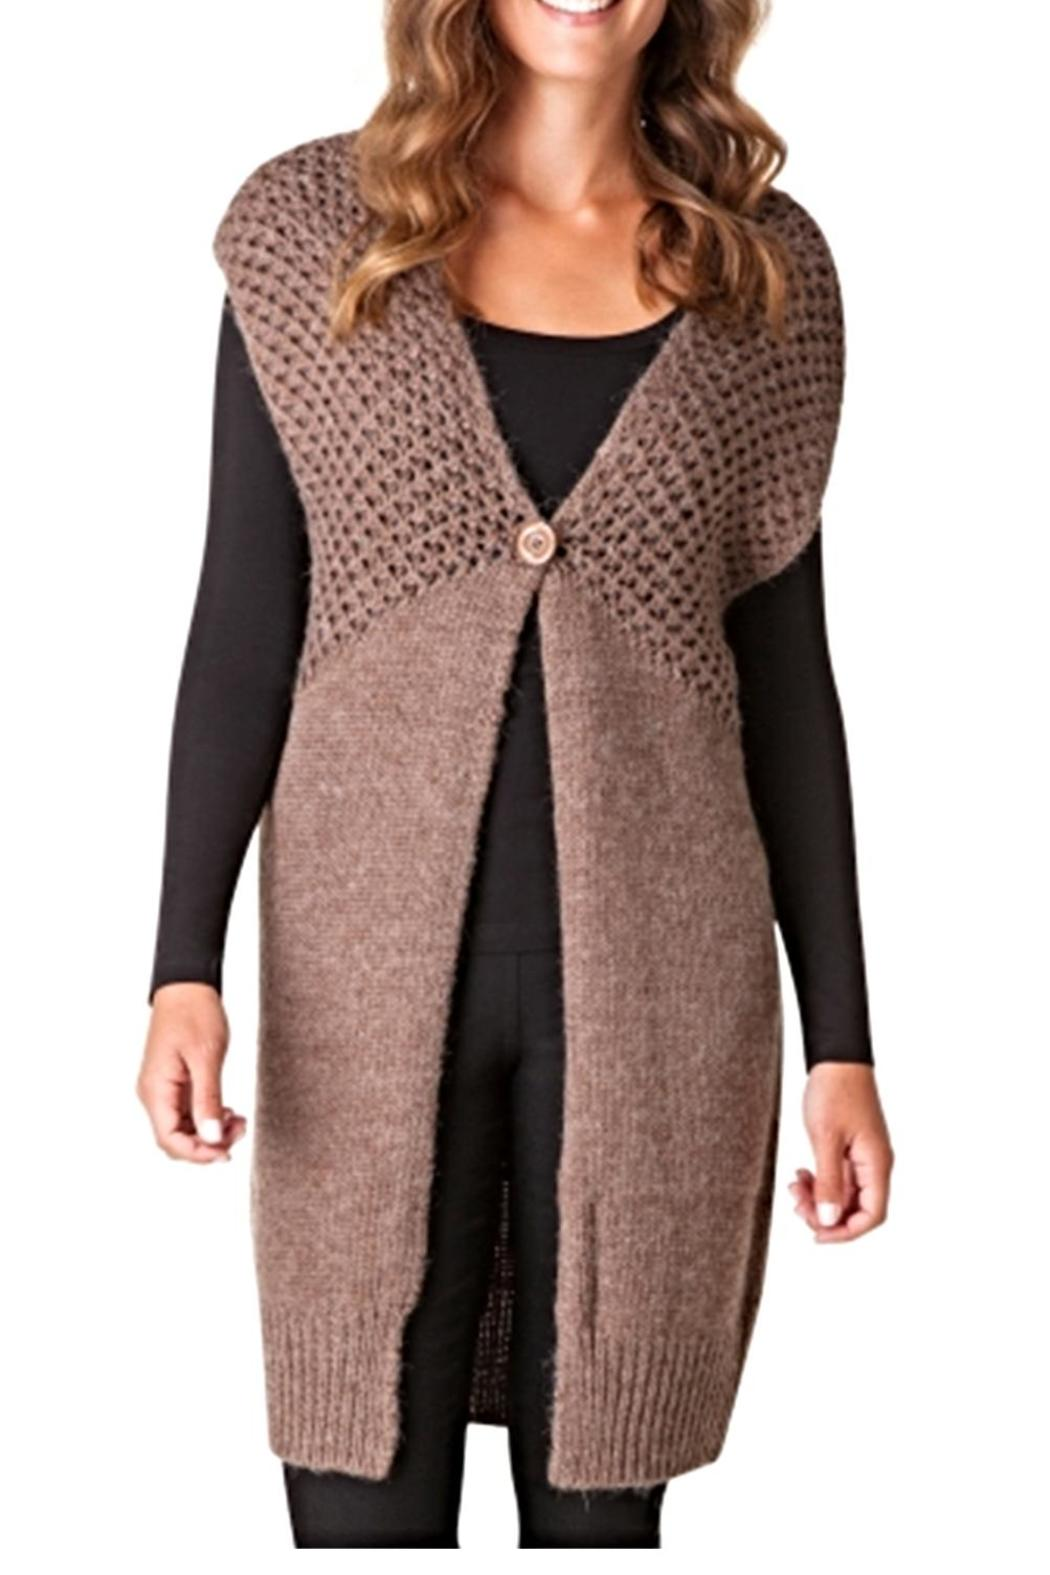 Long Sweater Vest from Chicago by What She Wants Boutique — Shoptiques